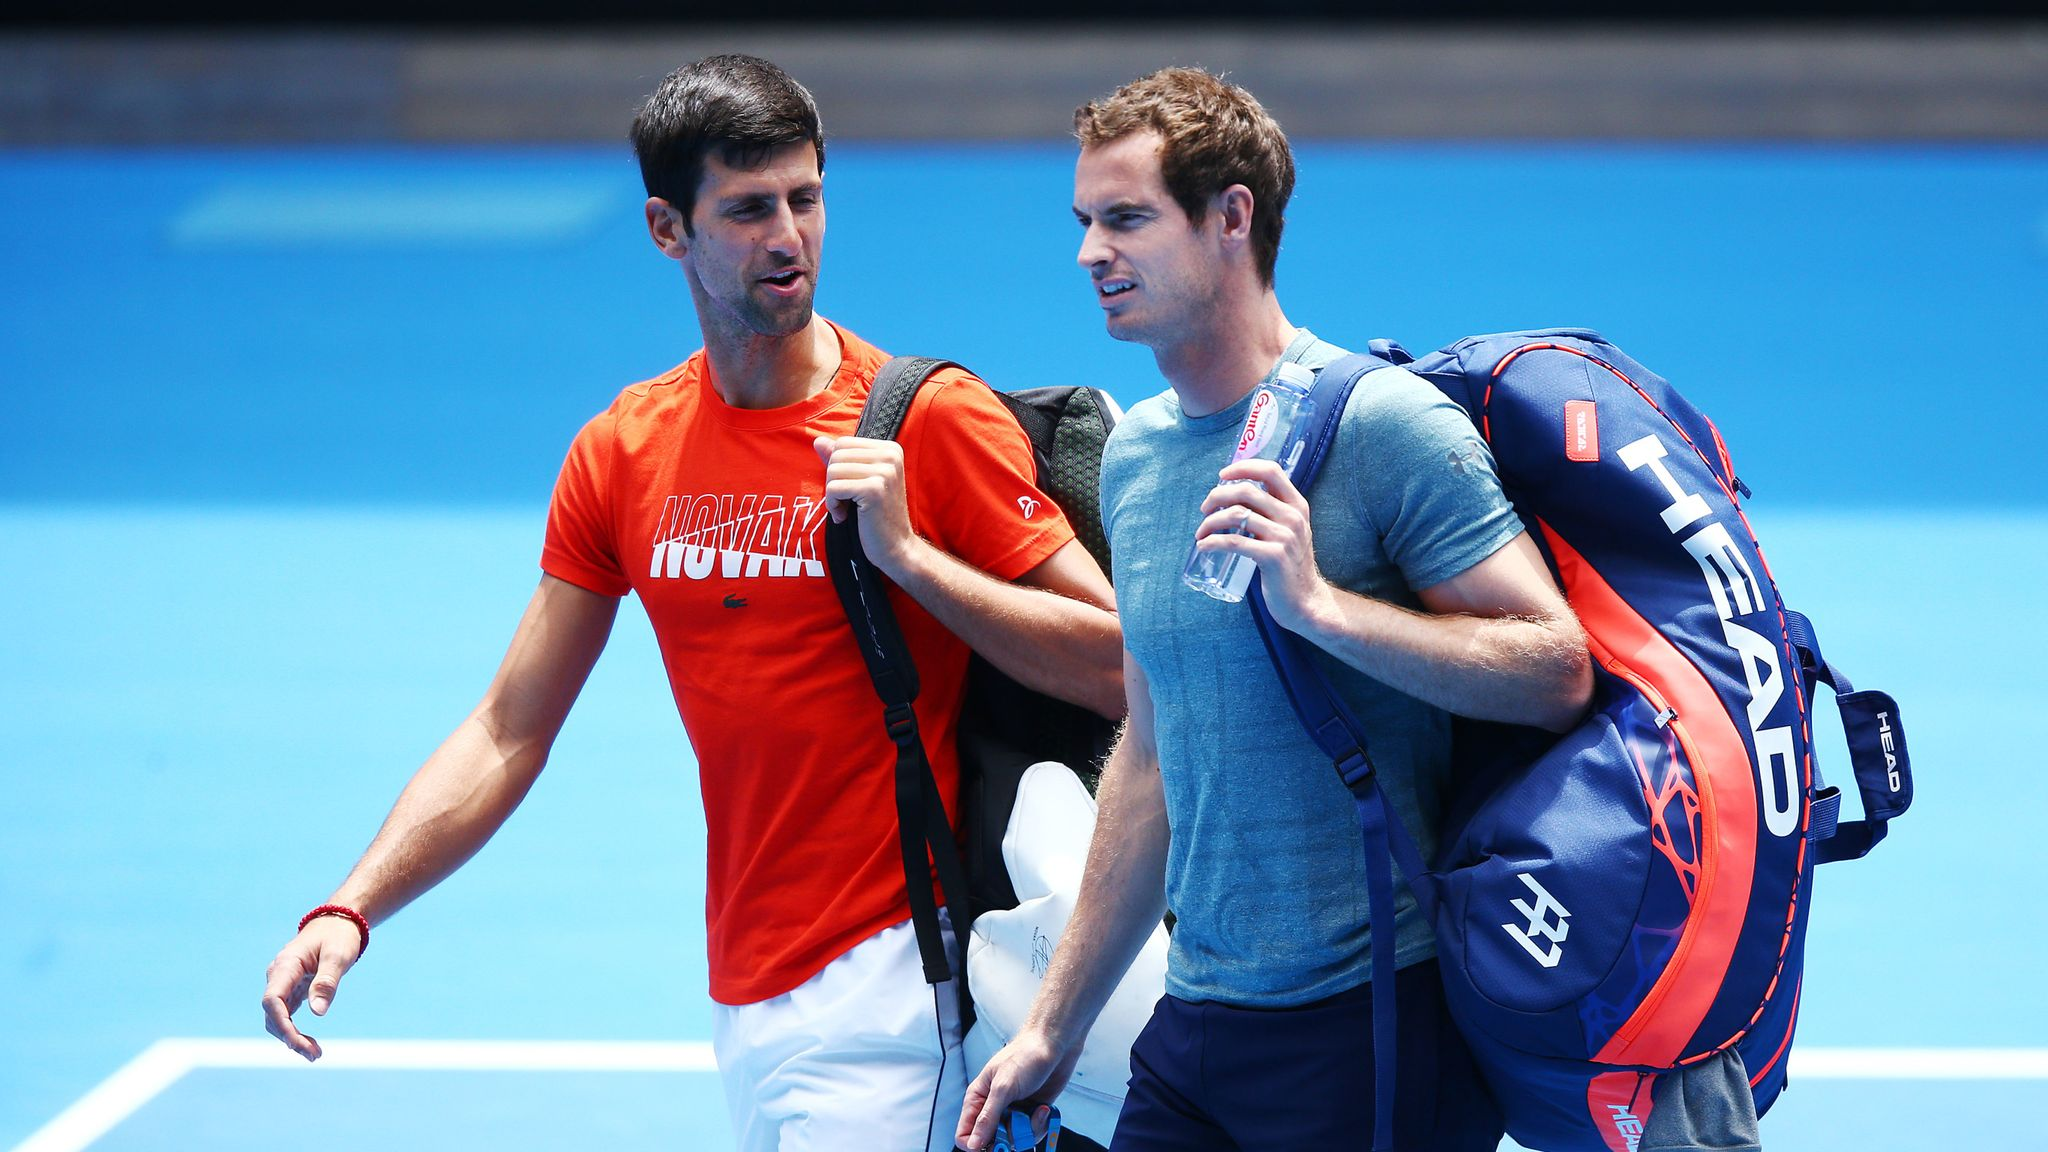 Nick Kyrgios Claims Andy Murray Is Better Than Novak Djokovic During Instagram Chat Tennis News Sky Sports